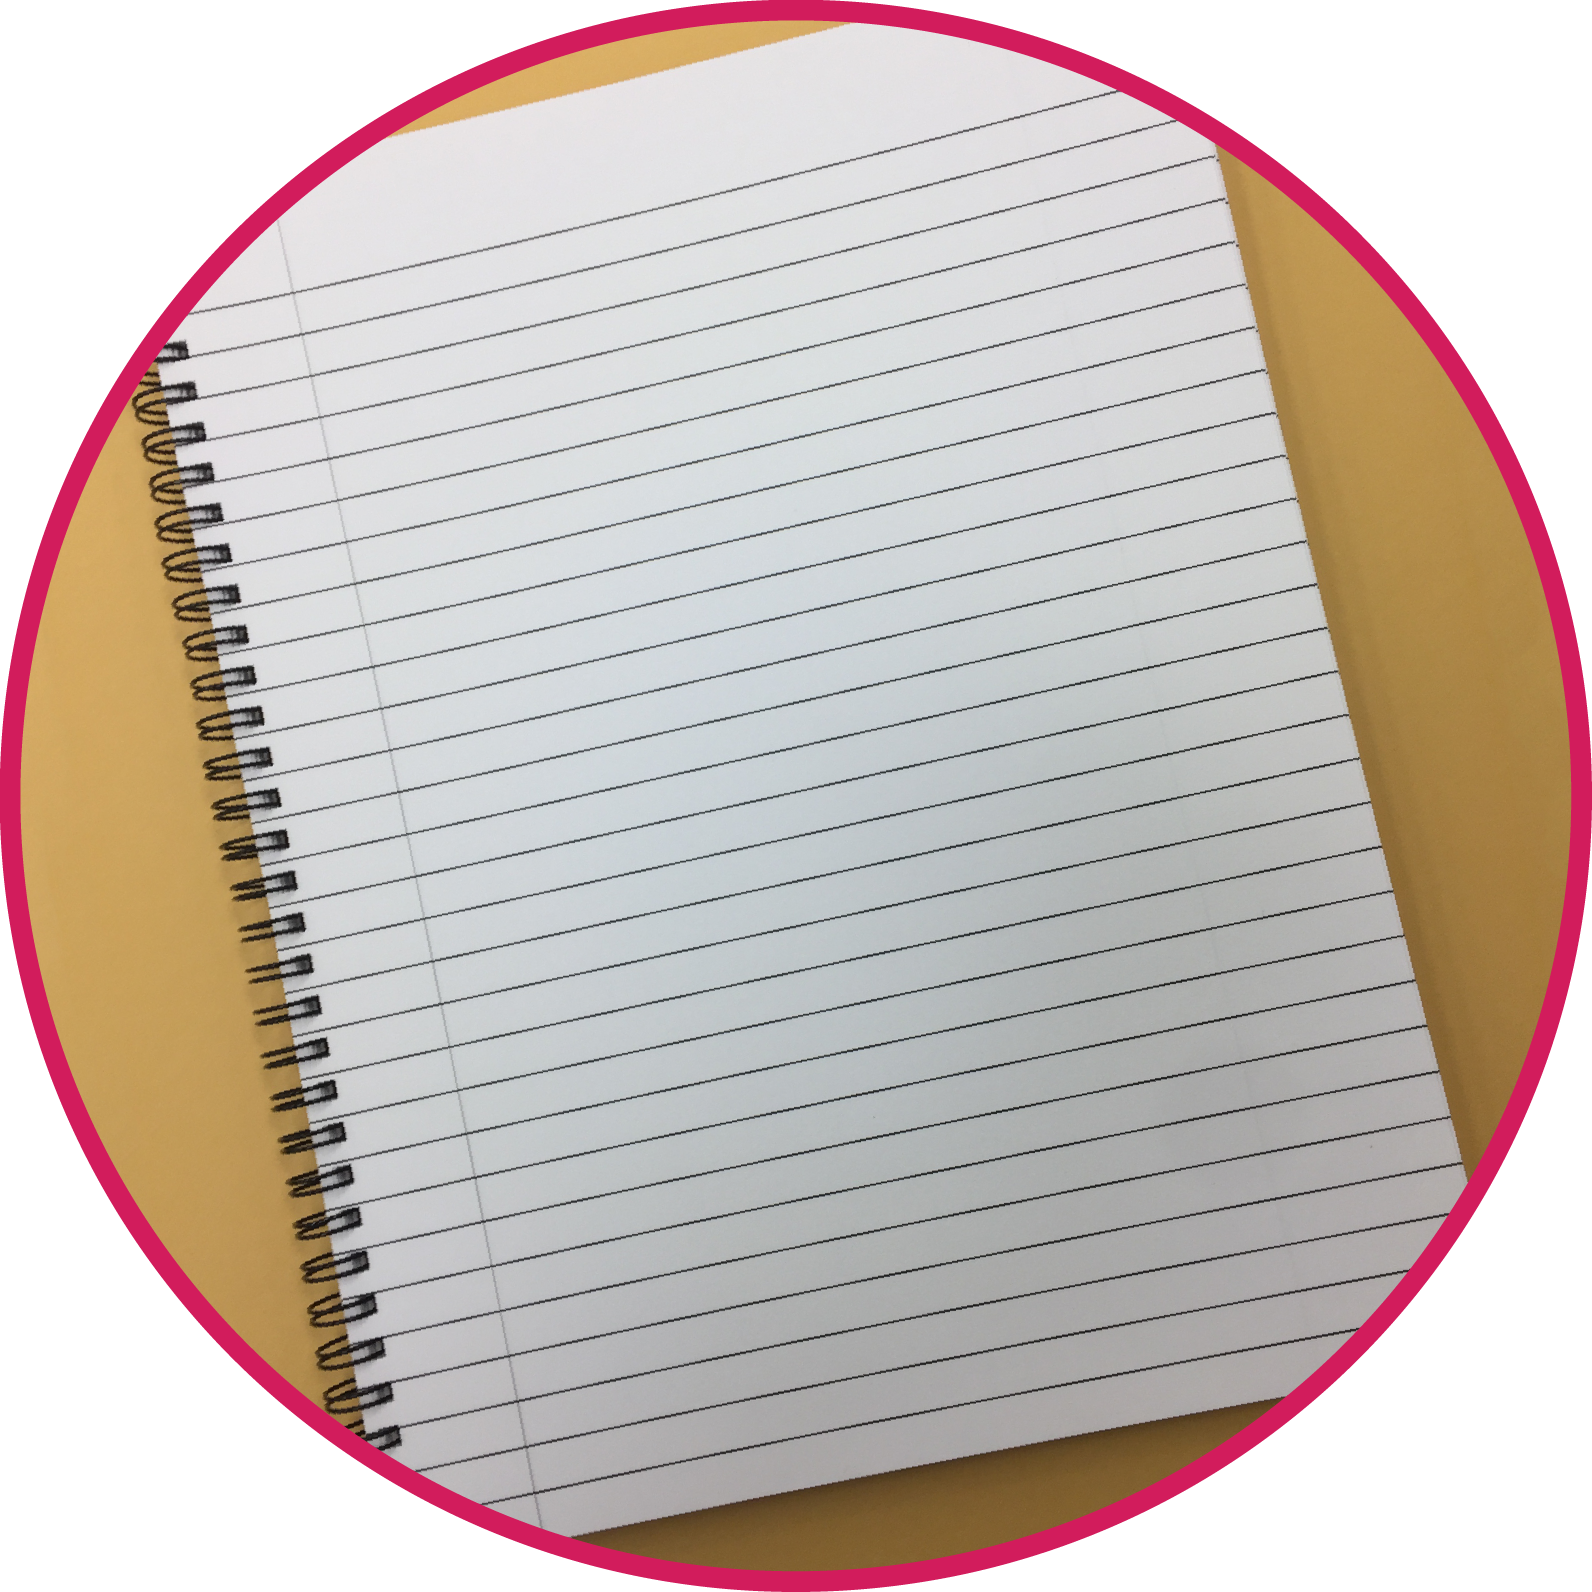 Paper notebook png. Gotcha covered notebooks options